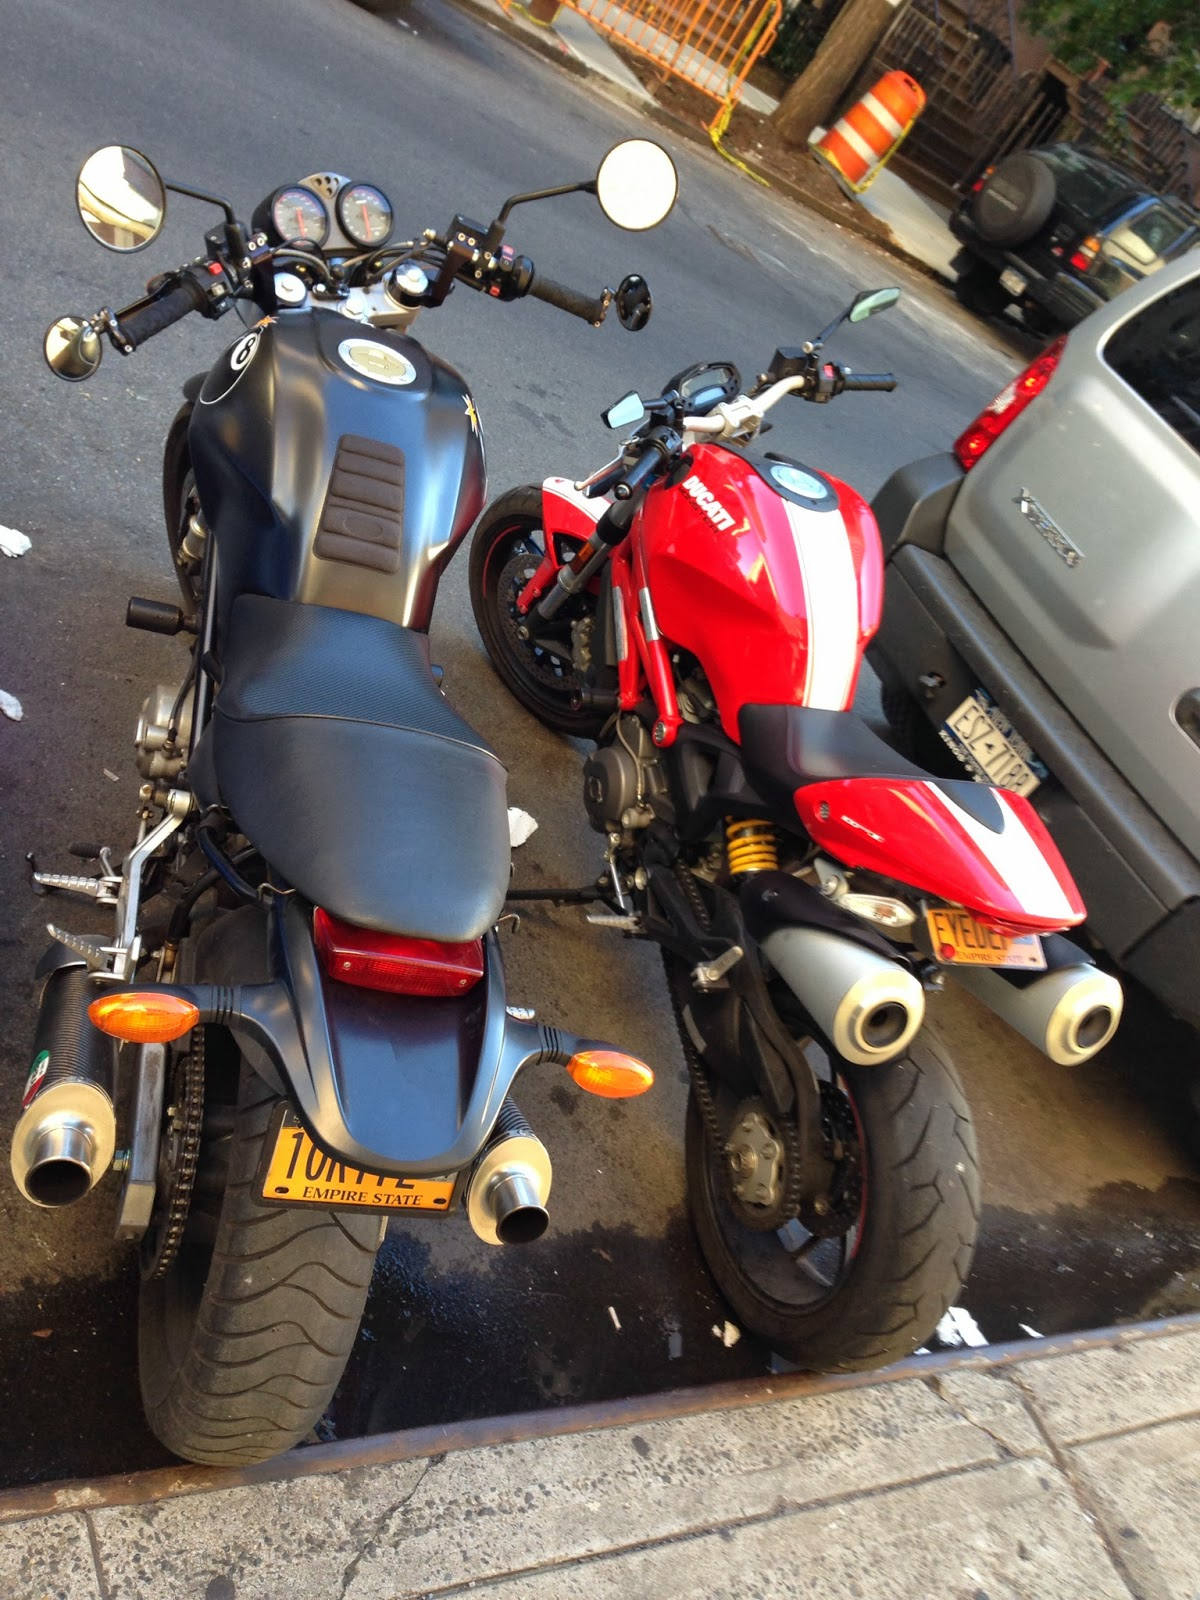 ducati monster 1100evo side by side with Tigho's Ducati